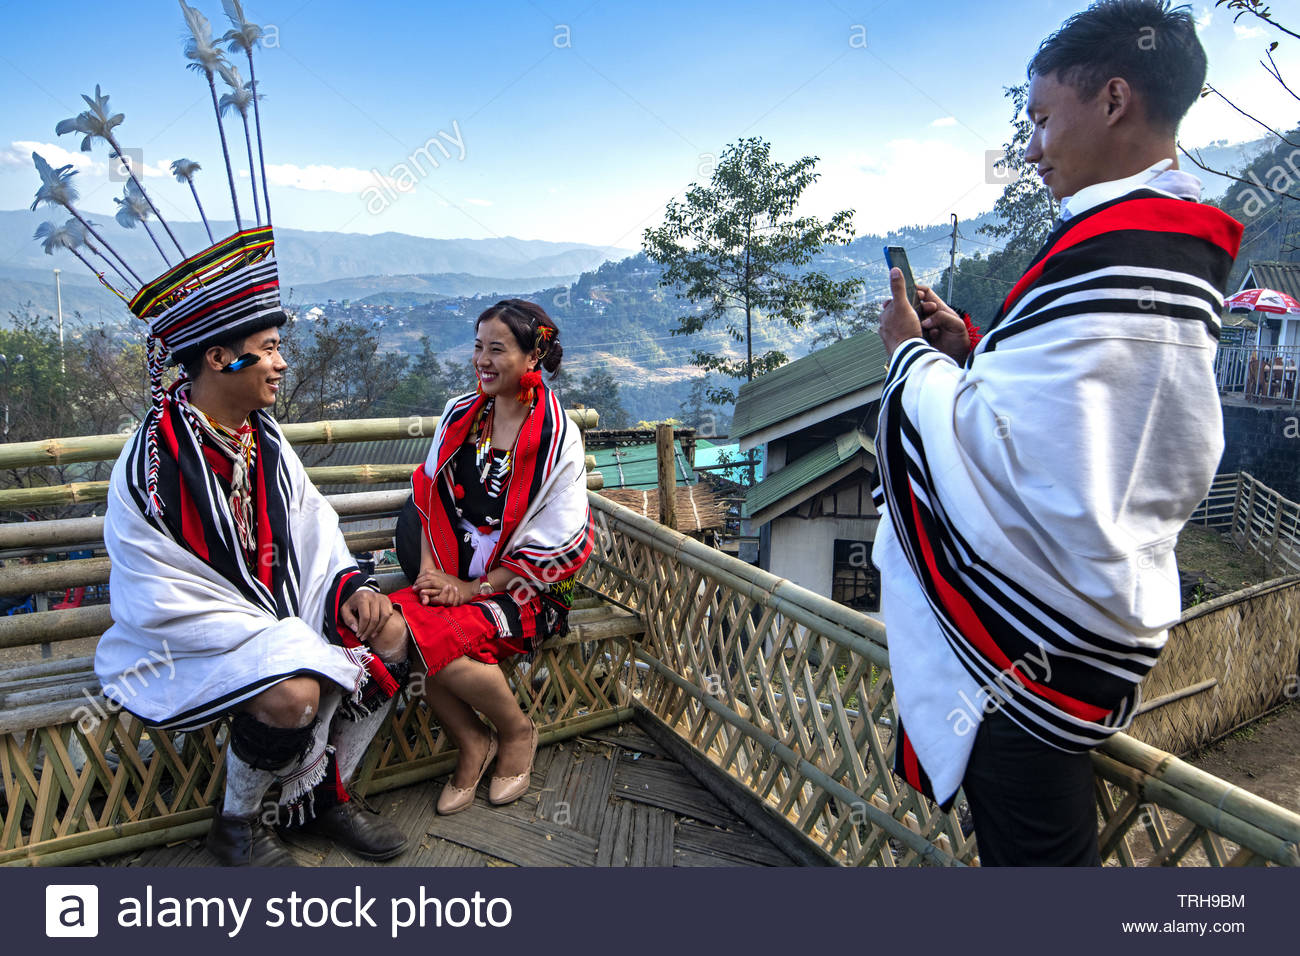 India, Nagaland, Kohima, annual meeting of all the Naga tribes during the Hornbill Festival Stock Photo